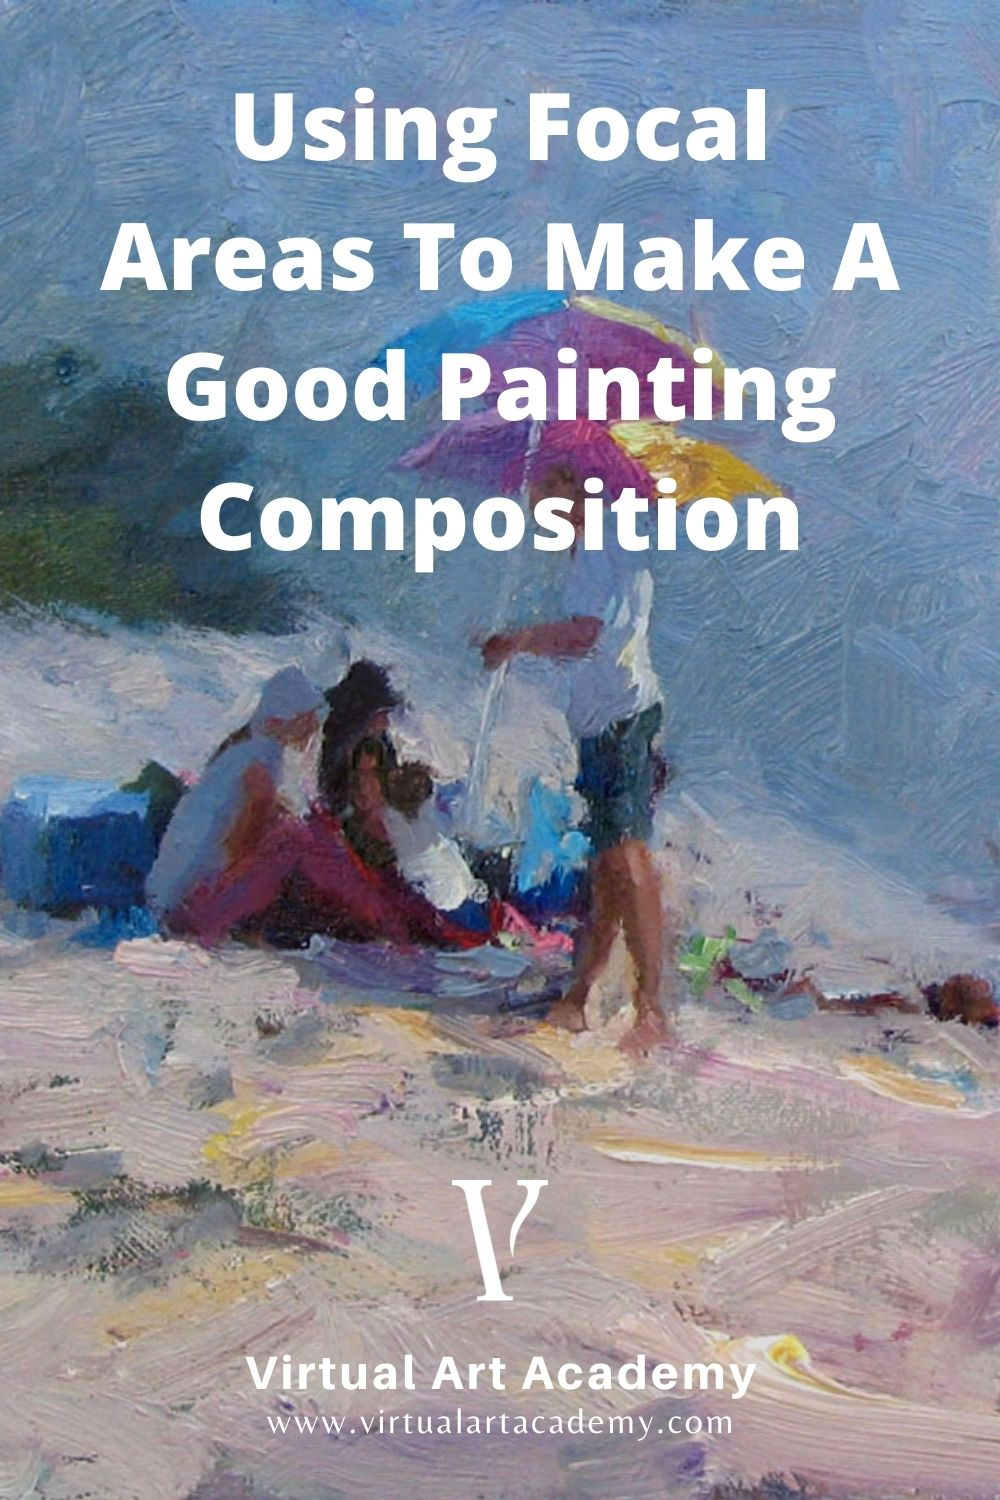 Using Focal Areas to Make a Good Painting Composition